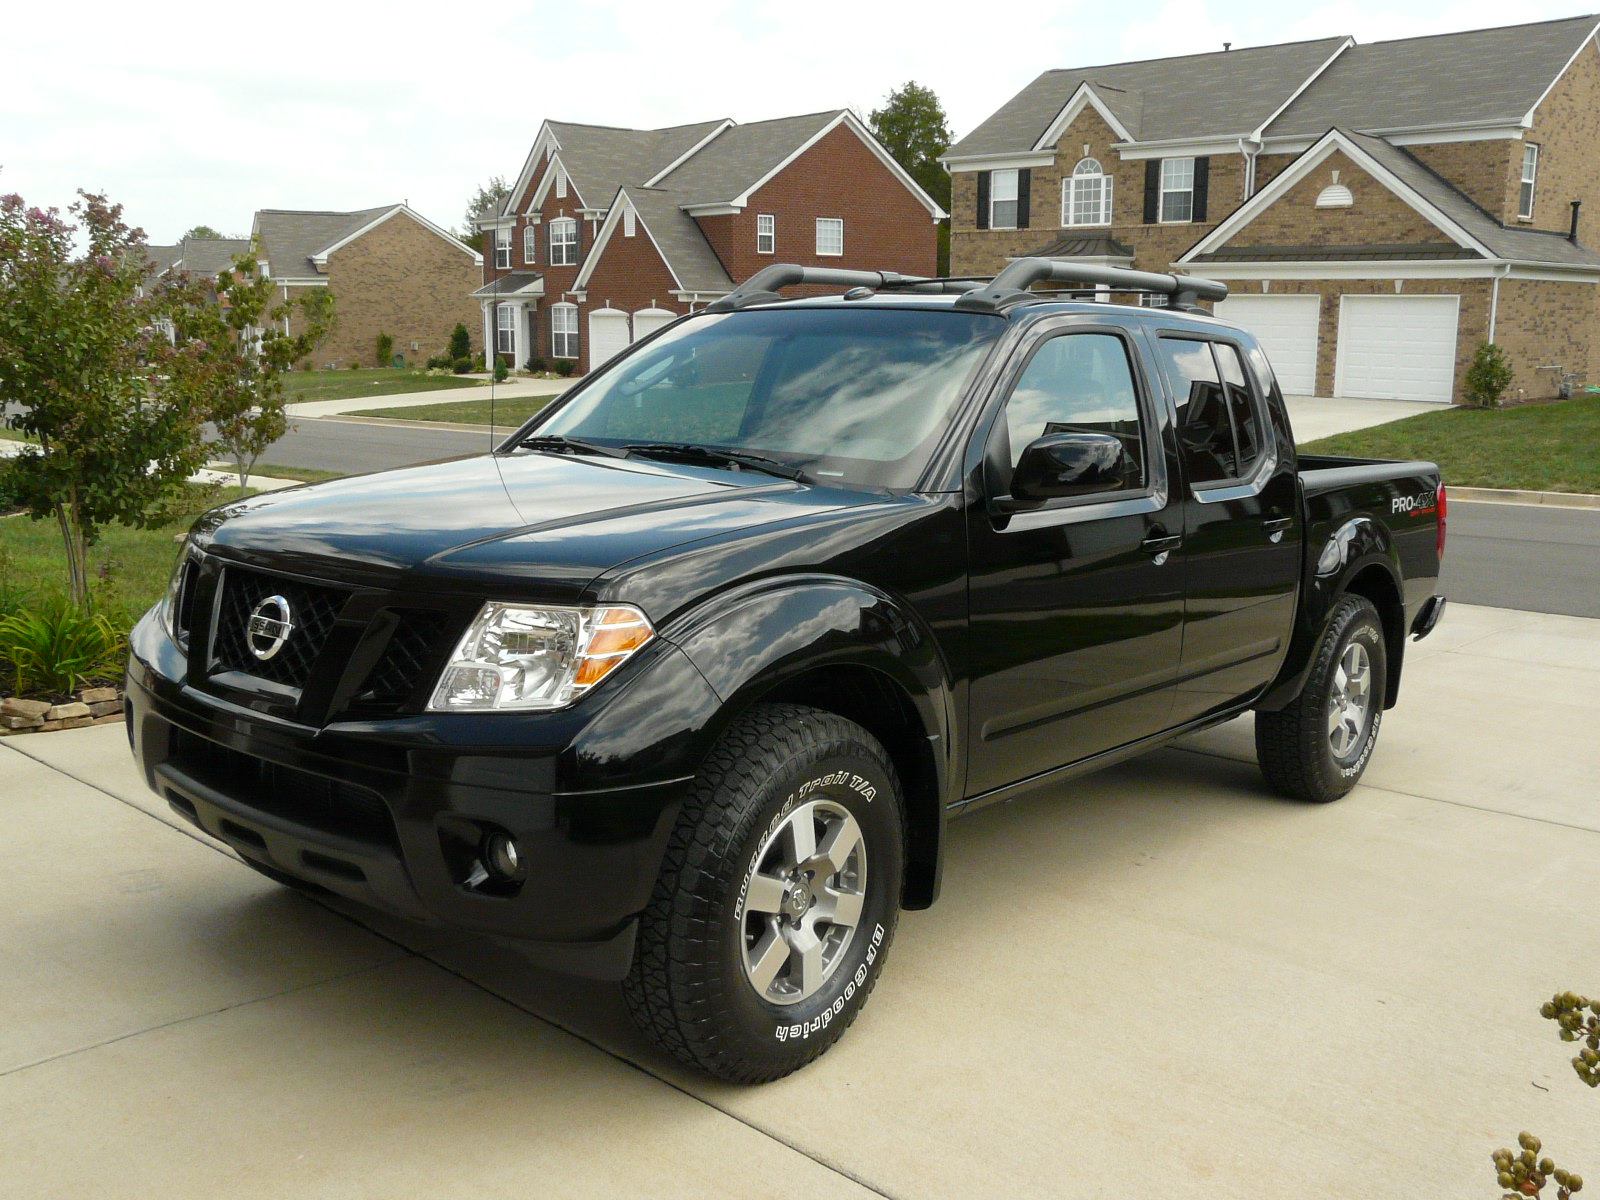 Nissan Frontier Crew Cab >> Does anybody have- '09 PRO-4X in Black? - Nissan Frontier Forum